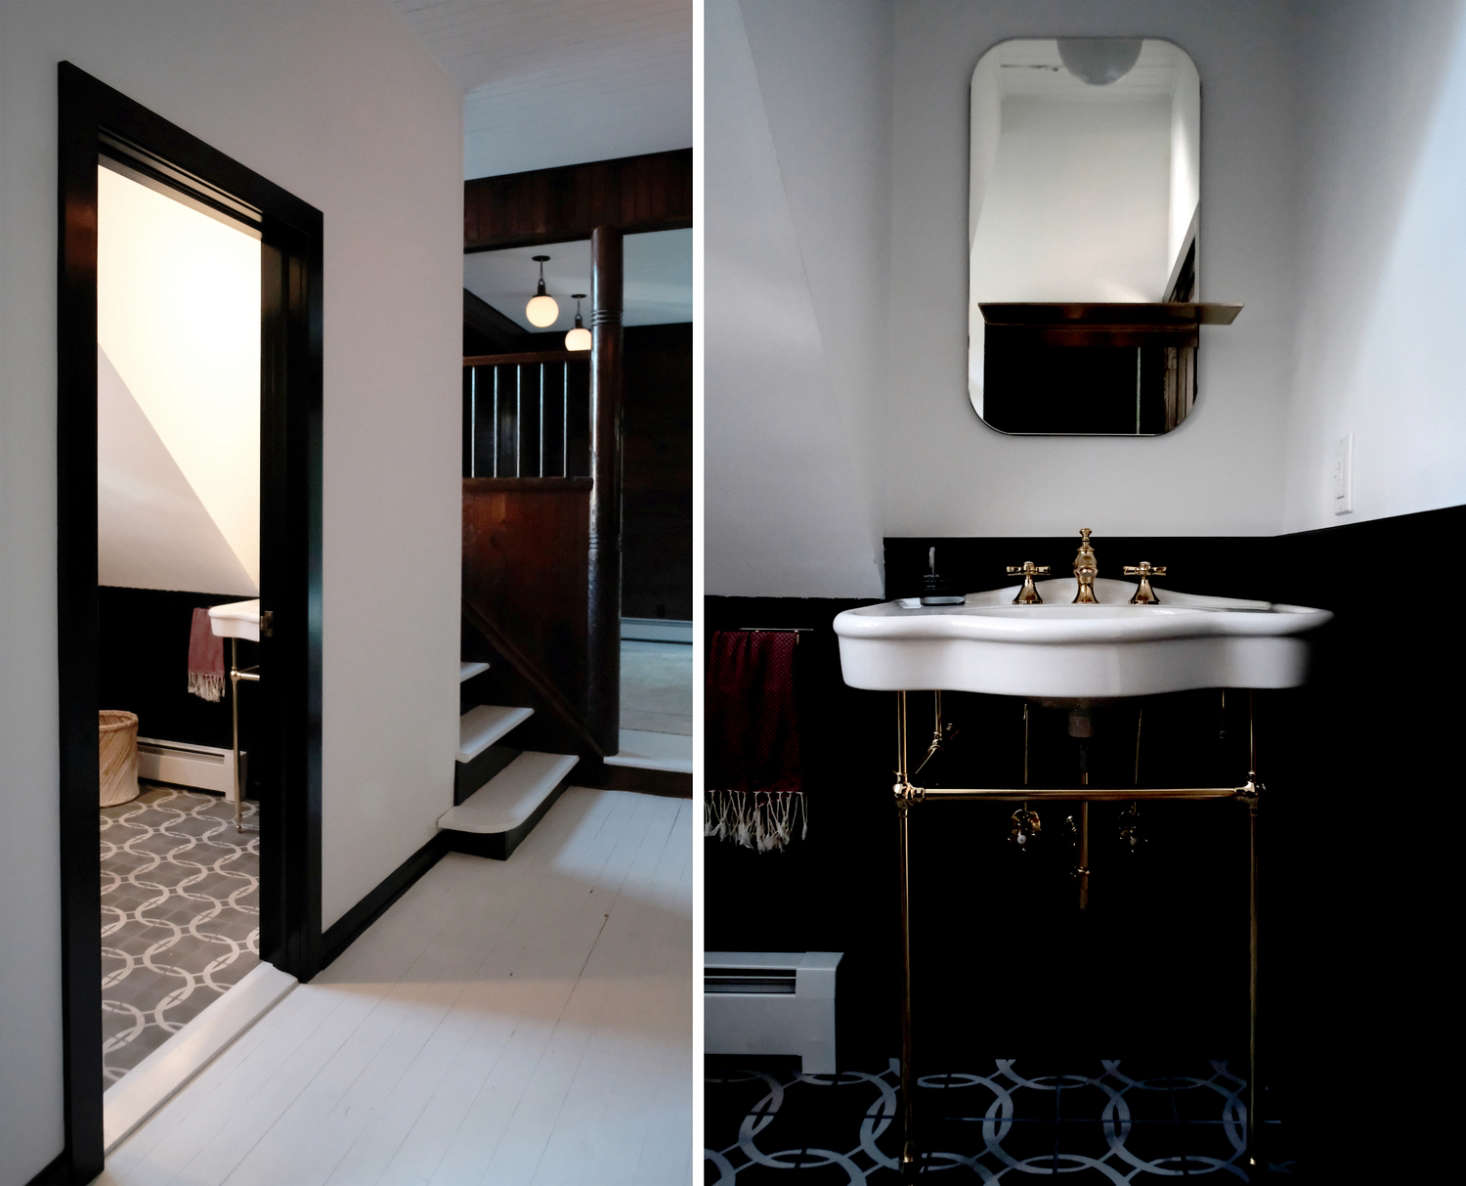 Architects Space Exploration overhauled this petite black-and-white bath inside a former carriage house inTuxedo Park, New York. See the rest in Before and After: A Tuxedo Park Carriage House Gets an Update in Black and White. Photography by and courtesy of Kevin Greenberg.